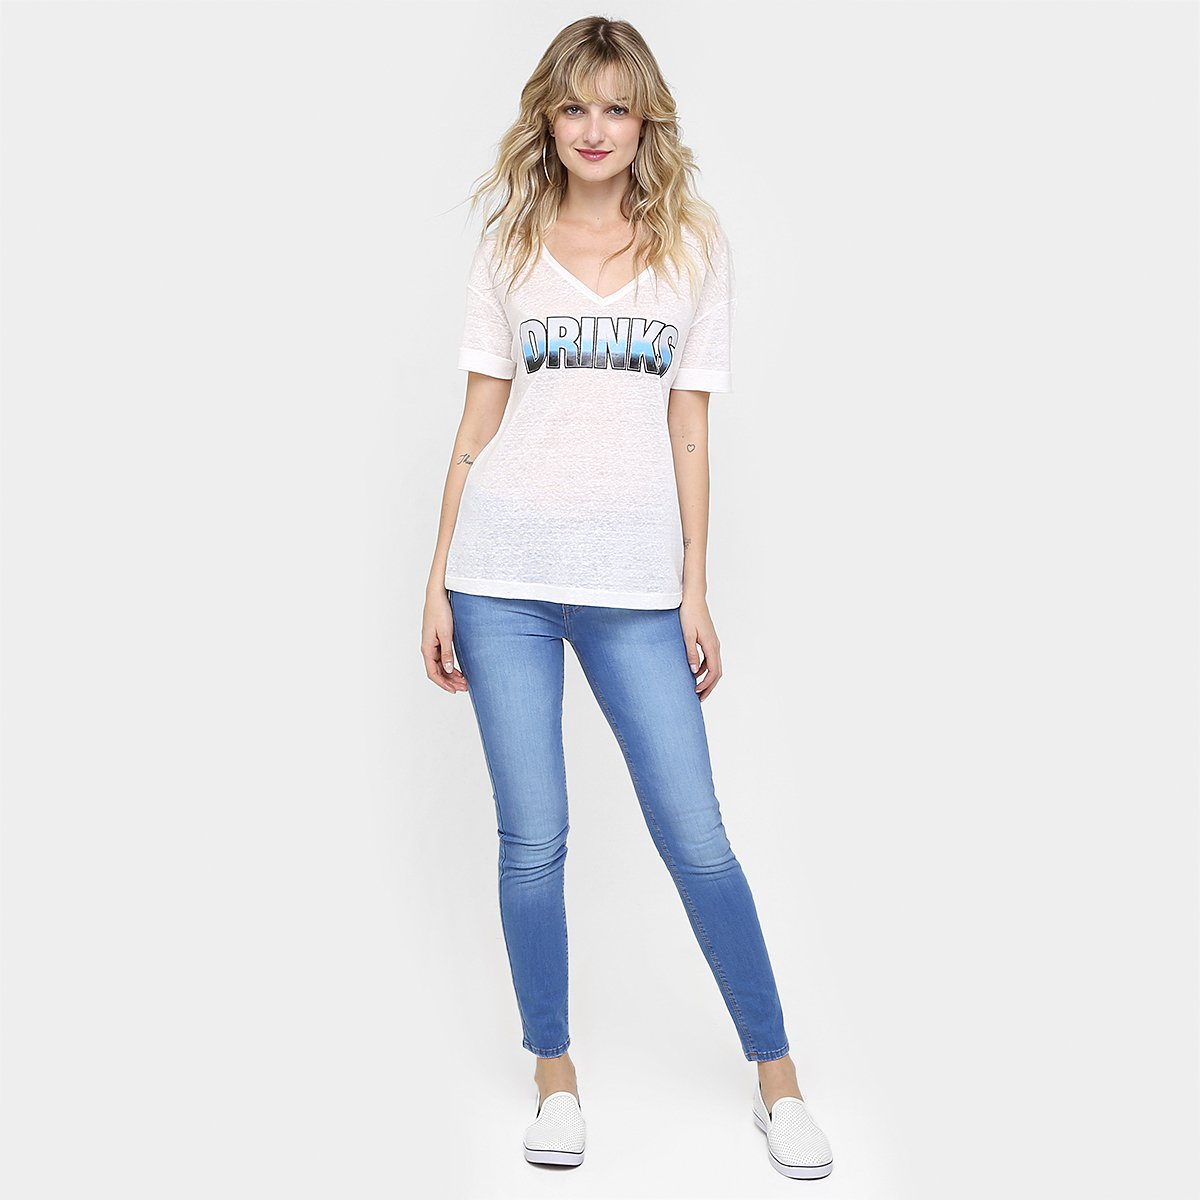 Canal White Canal Camiseta Off Off White Drinks Camiseta Drinks d6Xw55qx